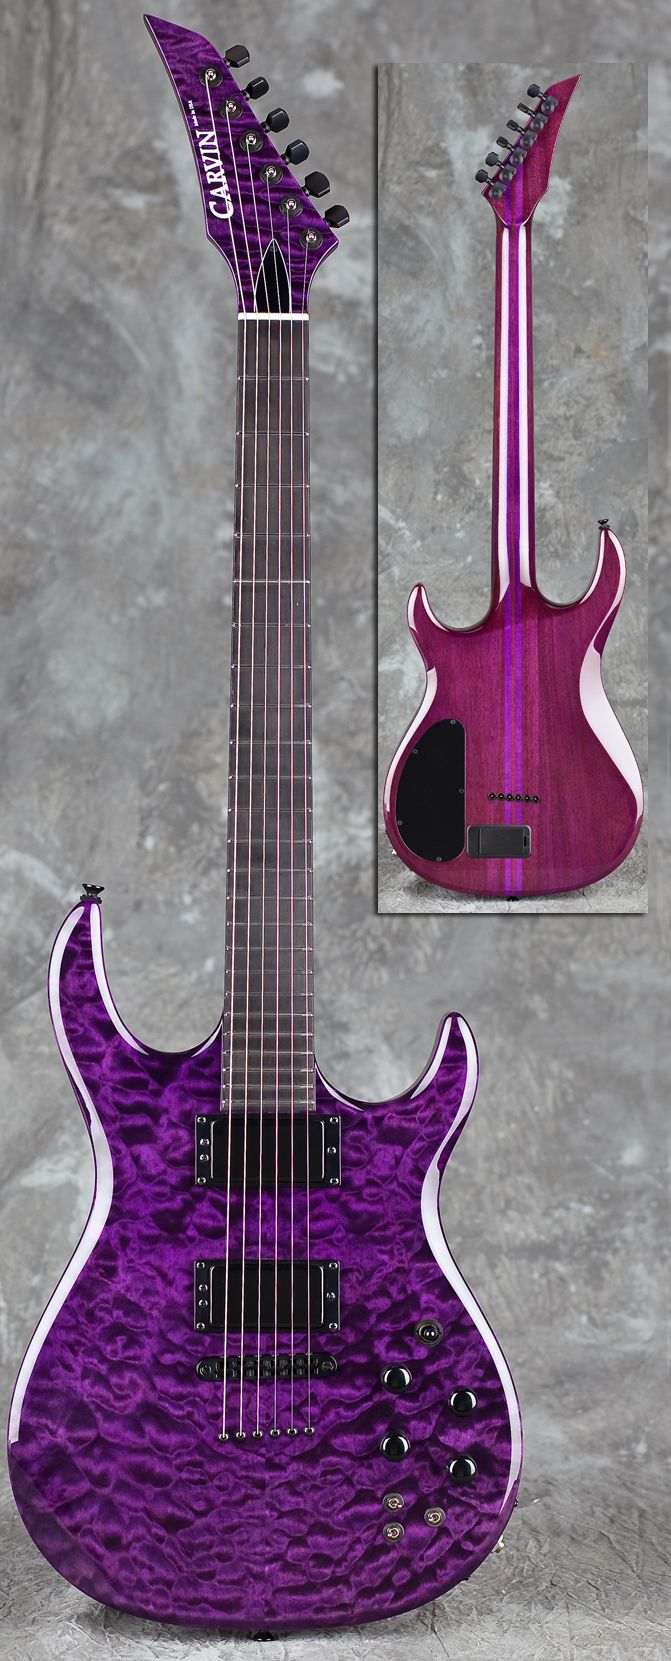 I have a thing for Purple guitars!